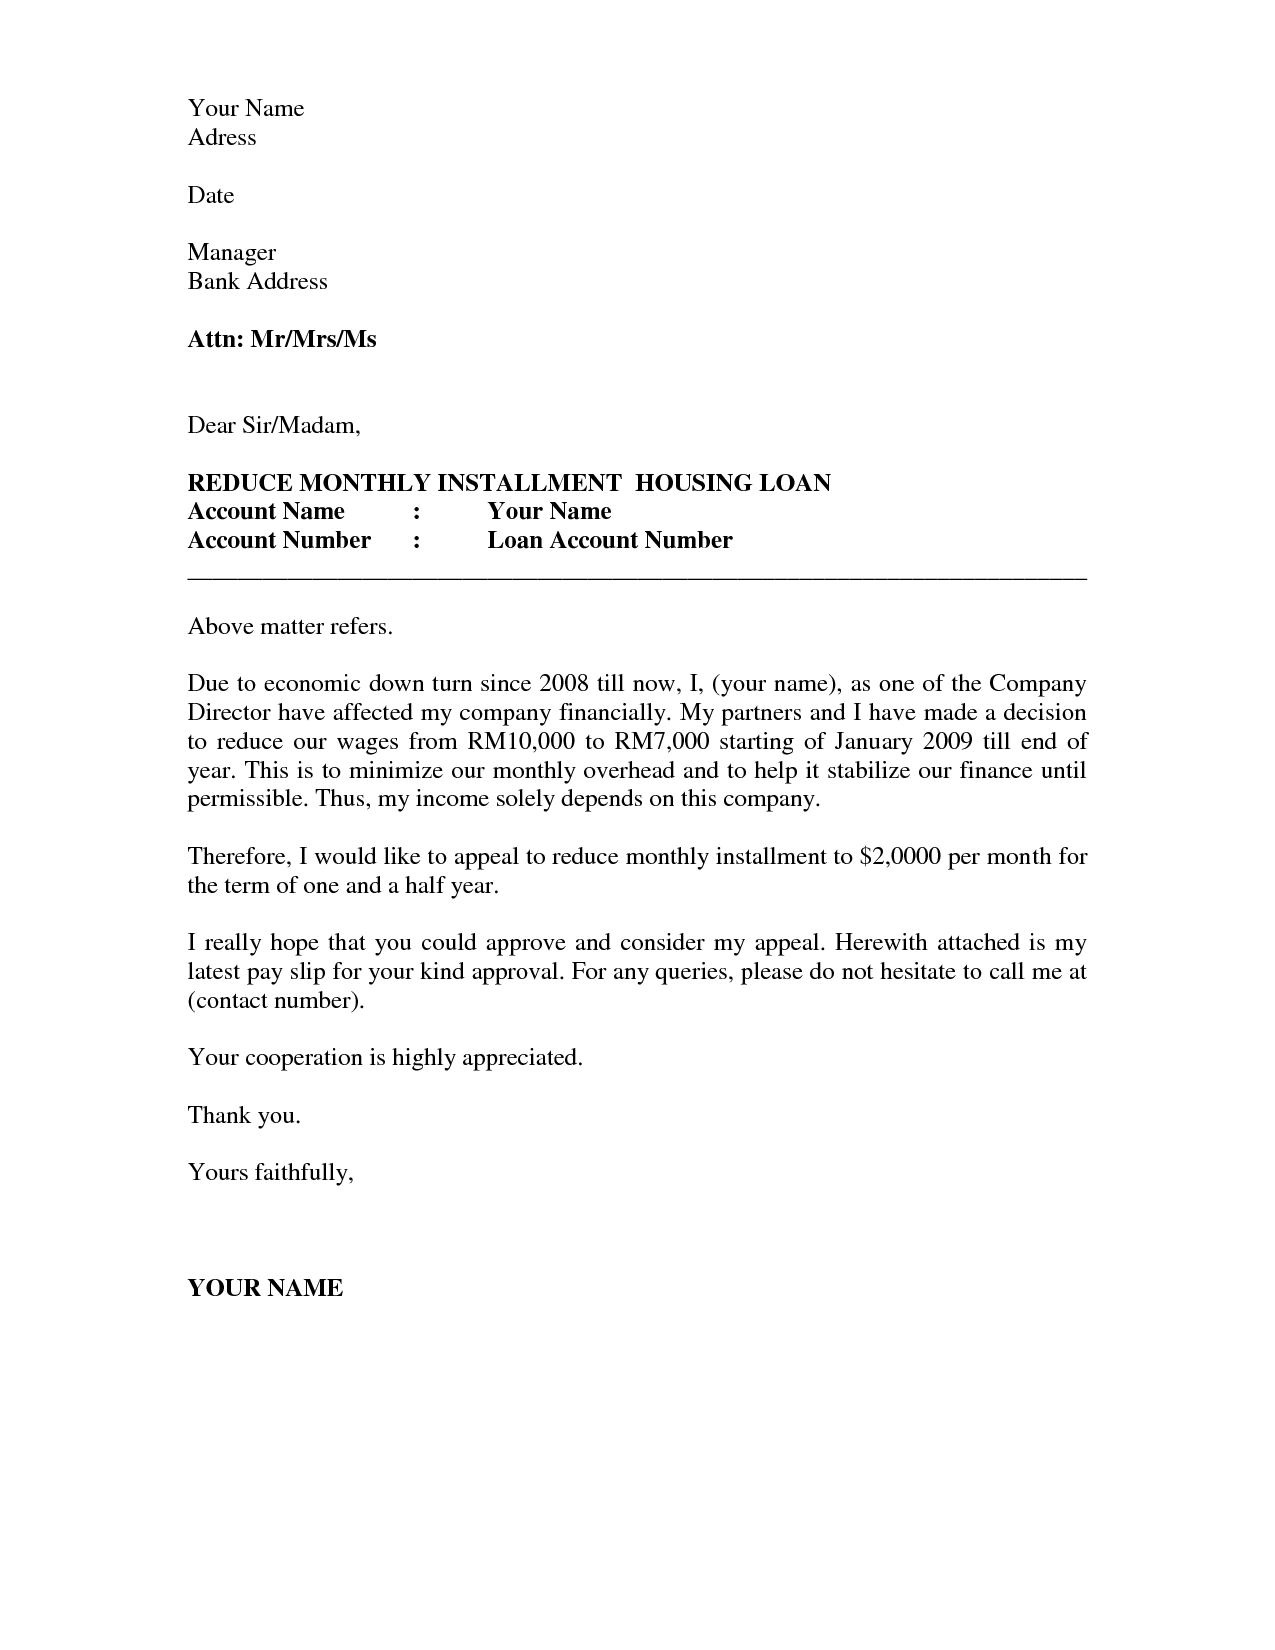 Formal Petition Letter Template - How to Write A Good Appeal Letter Acurnamedia